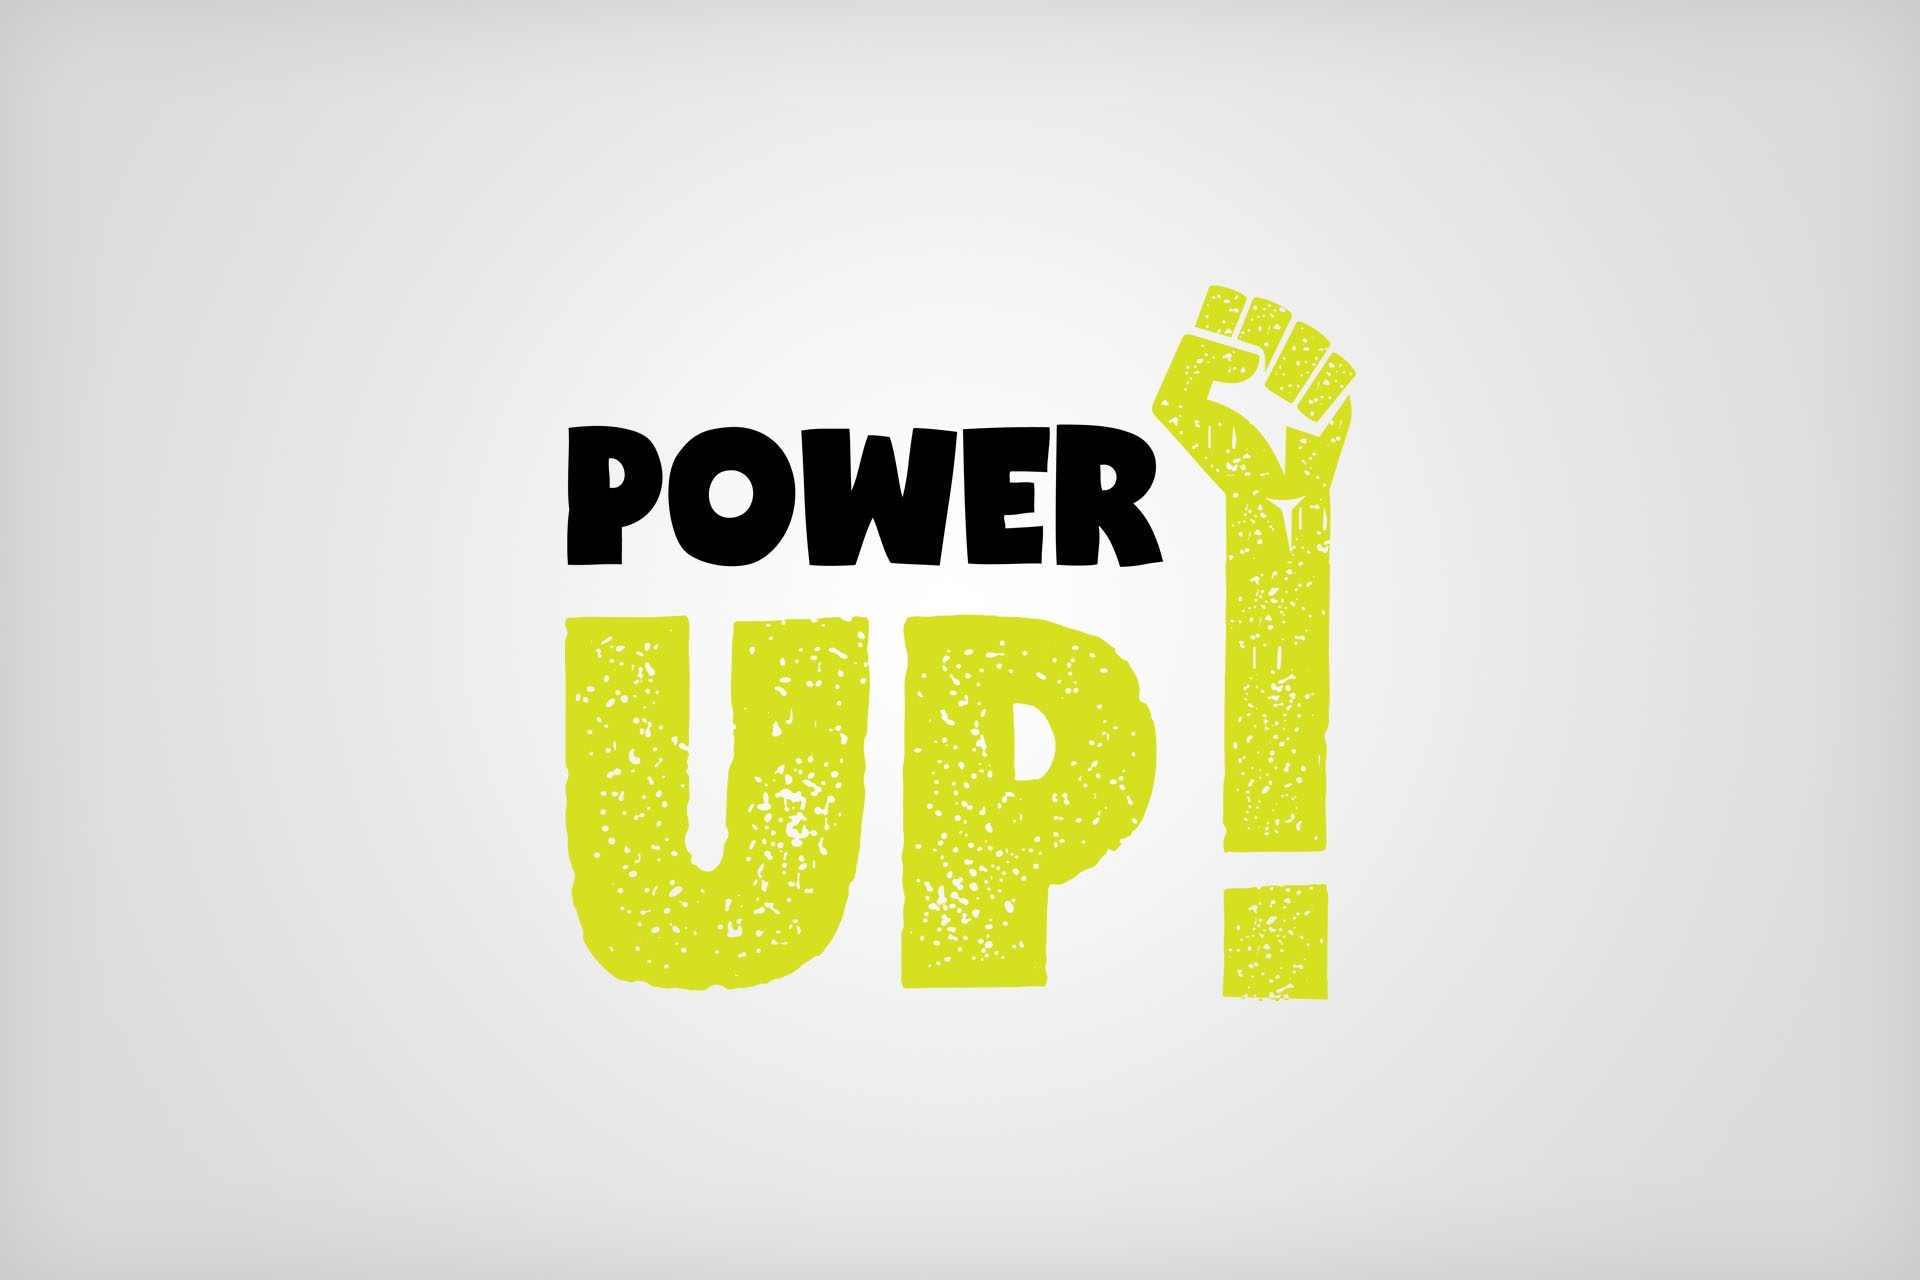 Power Up Logo Design and Branding